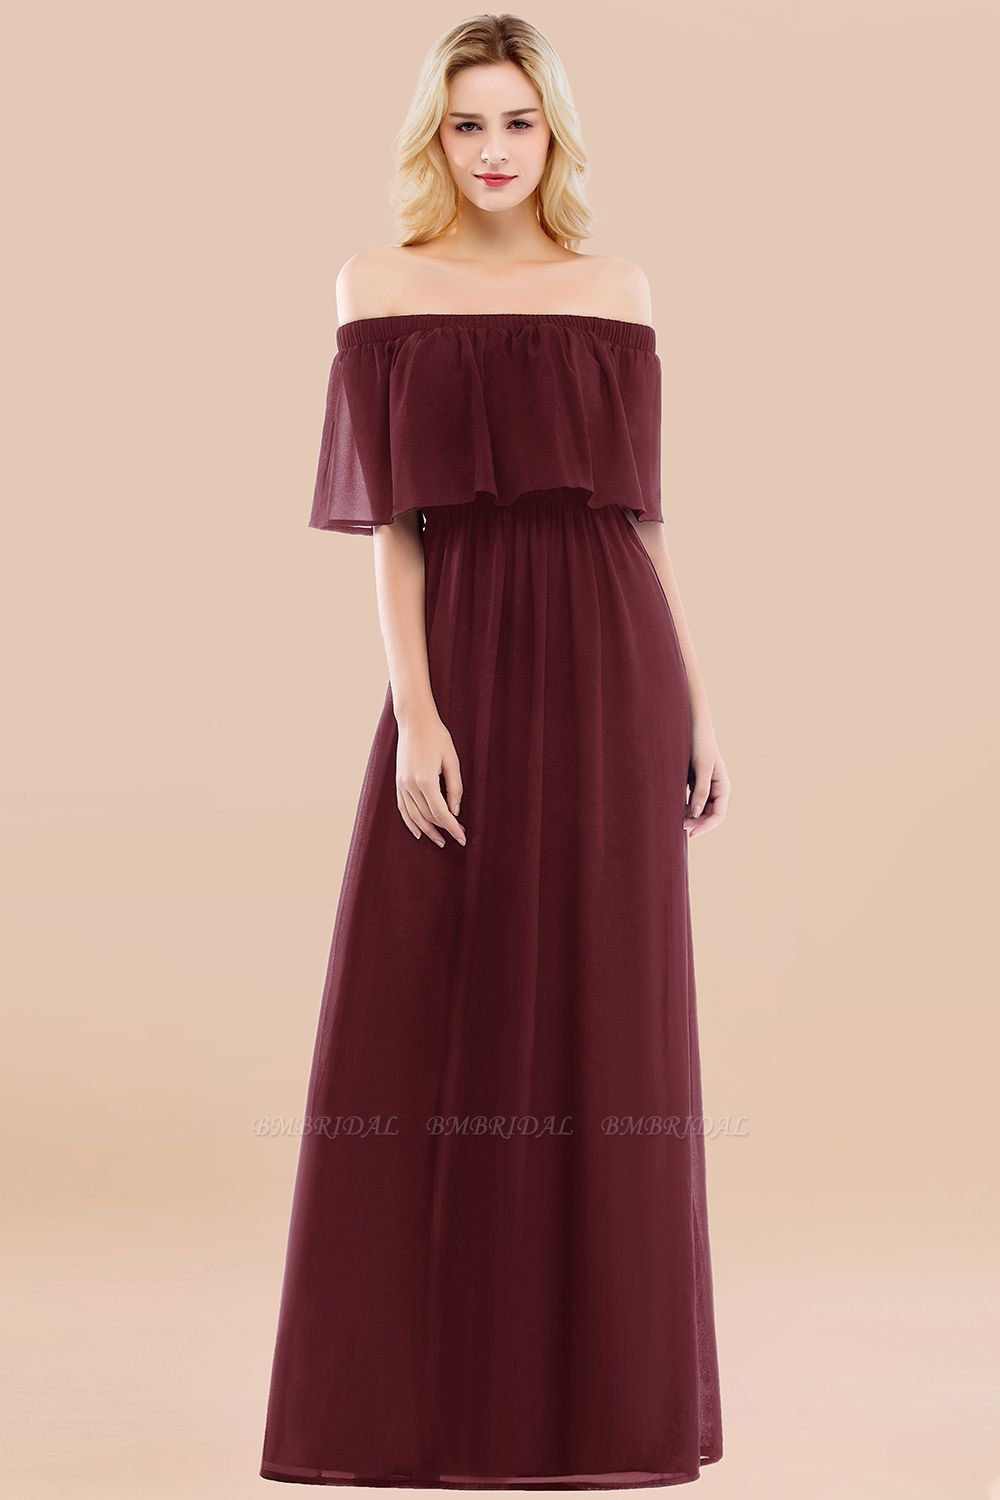 BMbridal Vintage Off-the-Shoulder Long Burgundy Bridesmaid Dress with Ruffle